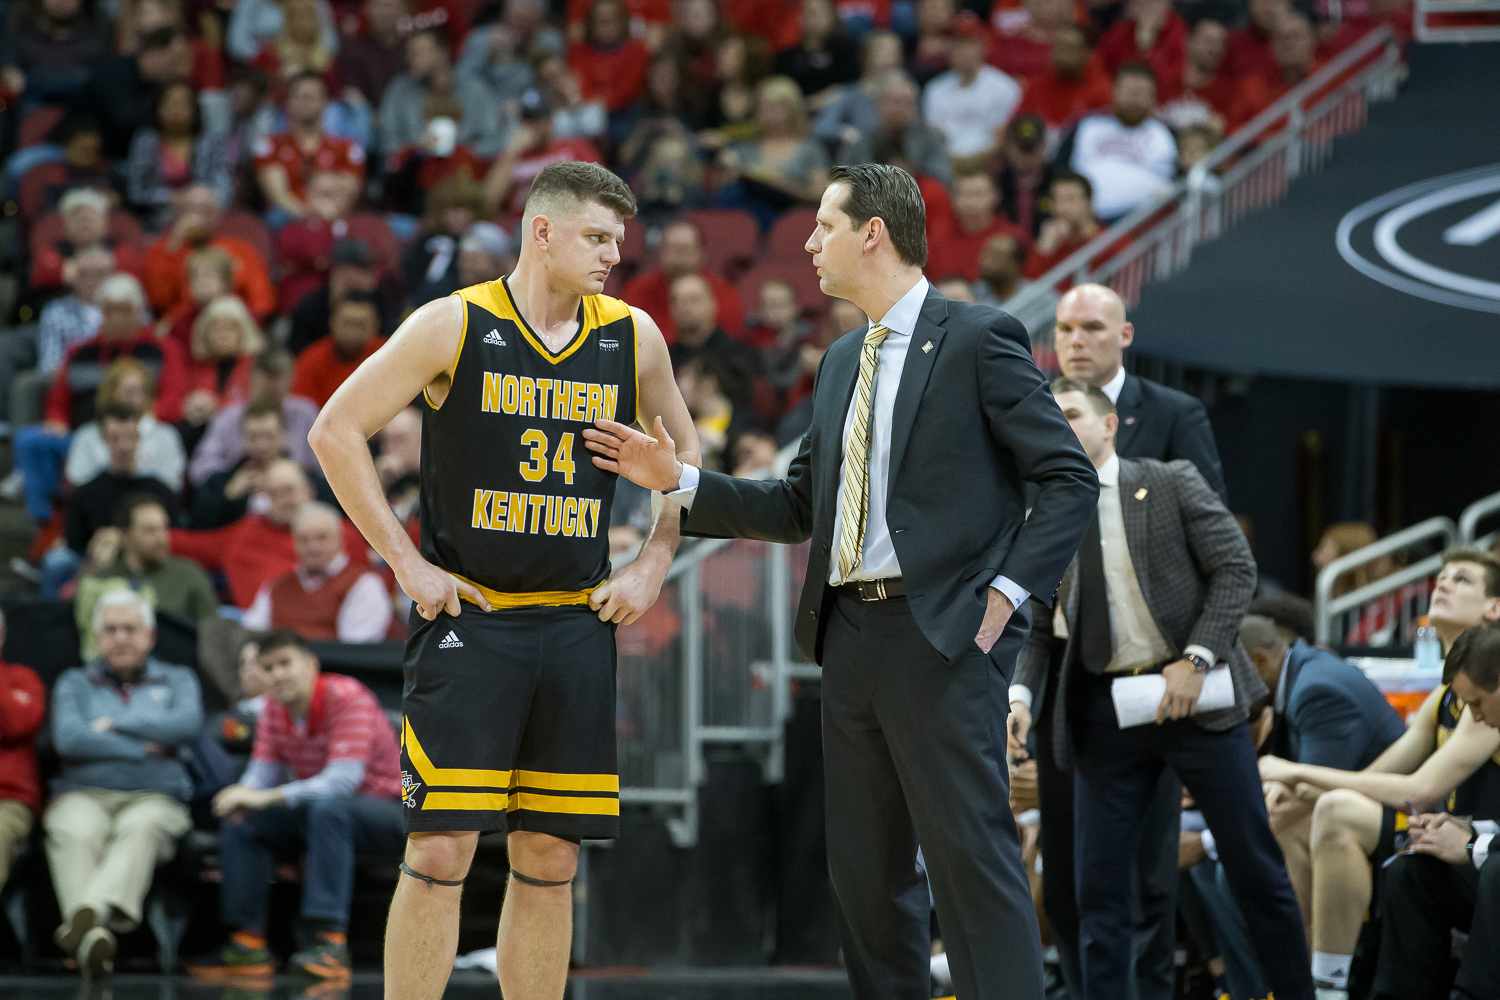 Drew McDonald (34) talks to Head Coach John Brannen during a free throw during the game against Louisville.